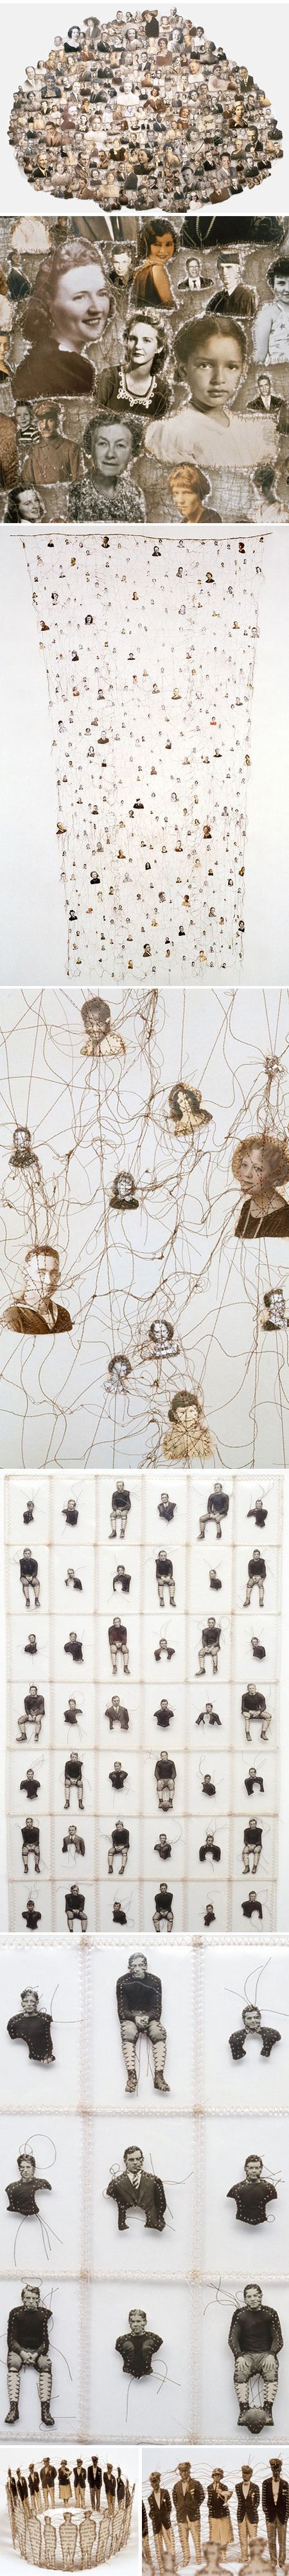 some incredible pieces by lisa kokin. found photos sewn together in interesting ways (entangled? :) )